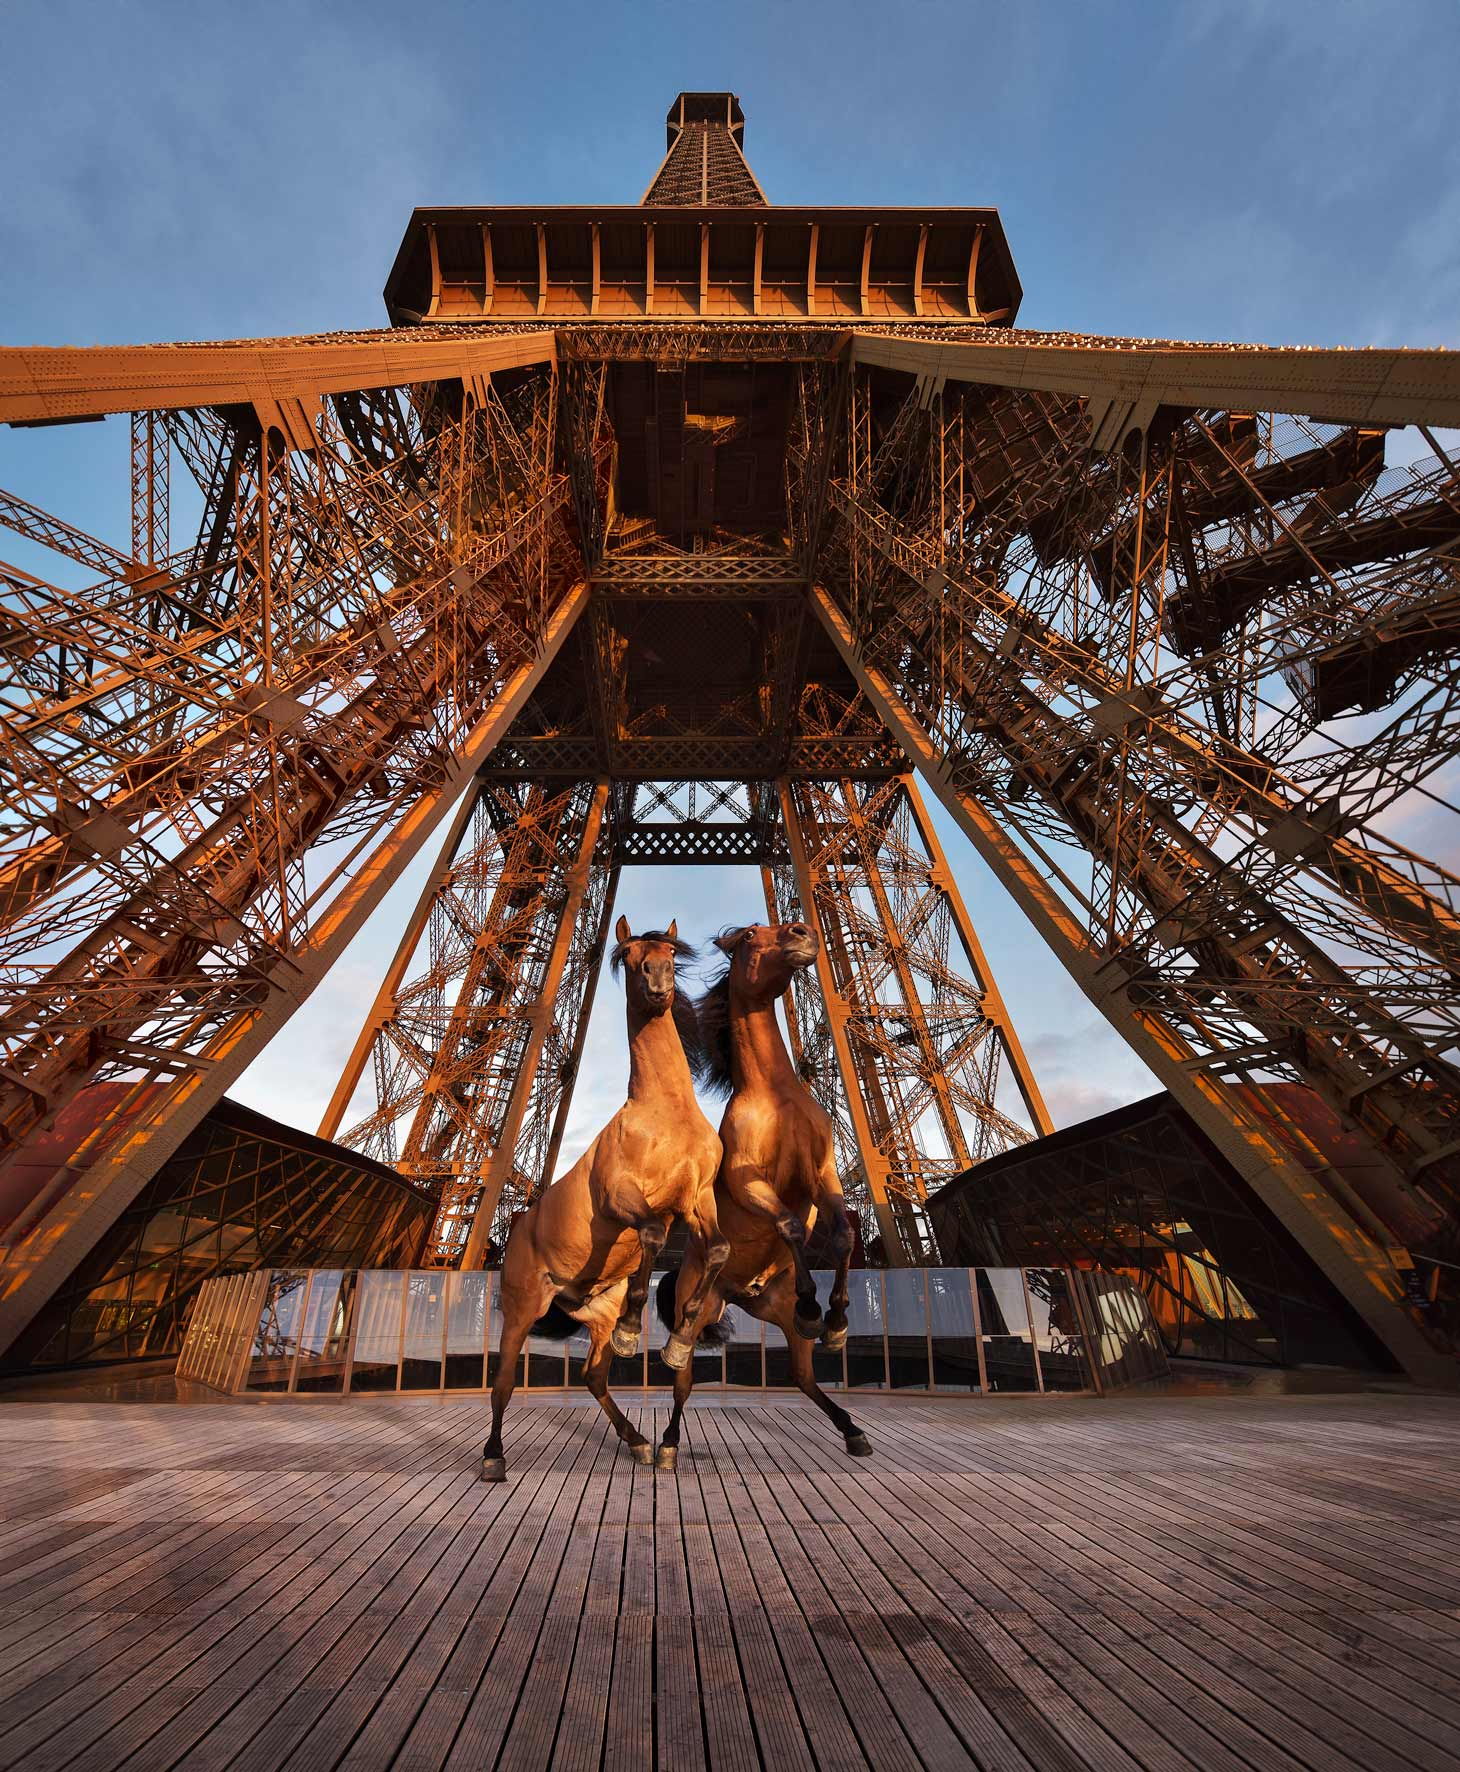 Paola Pivi's equestrian assault on the Eiffel Tower